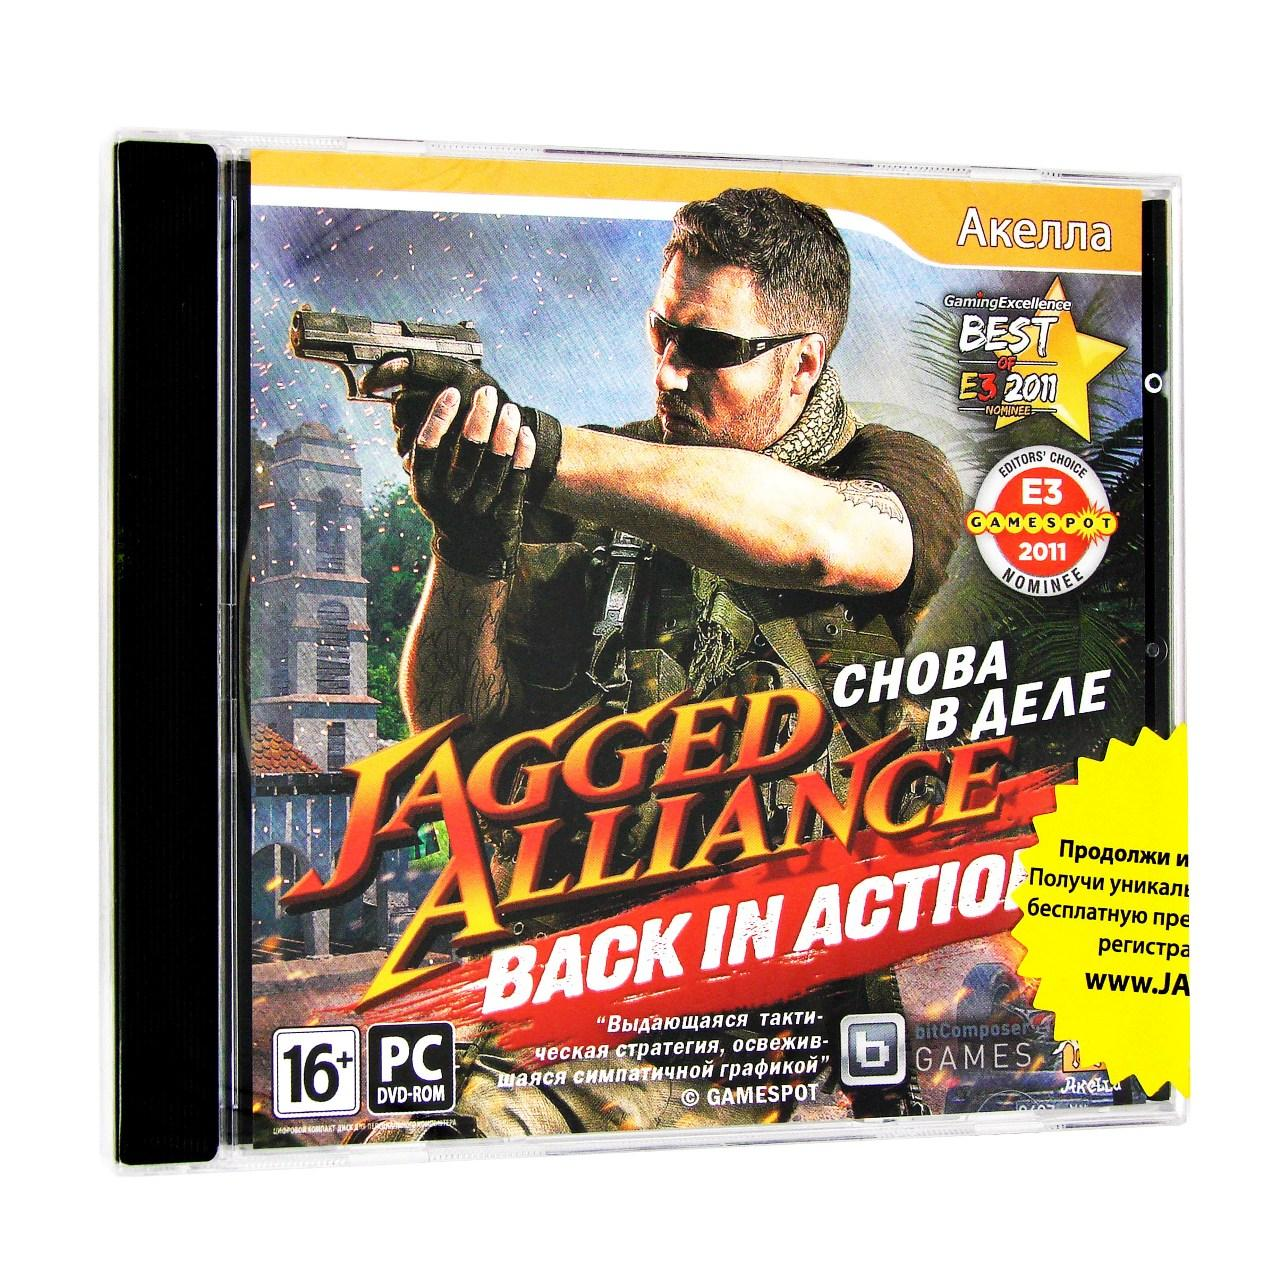 Jagged Alliance: Back in action (Снова в деле) (ПК)